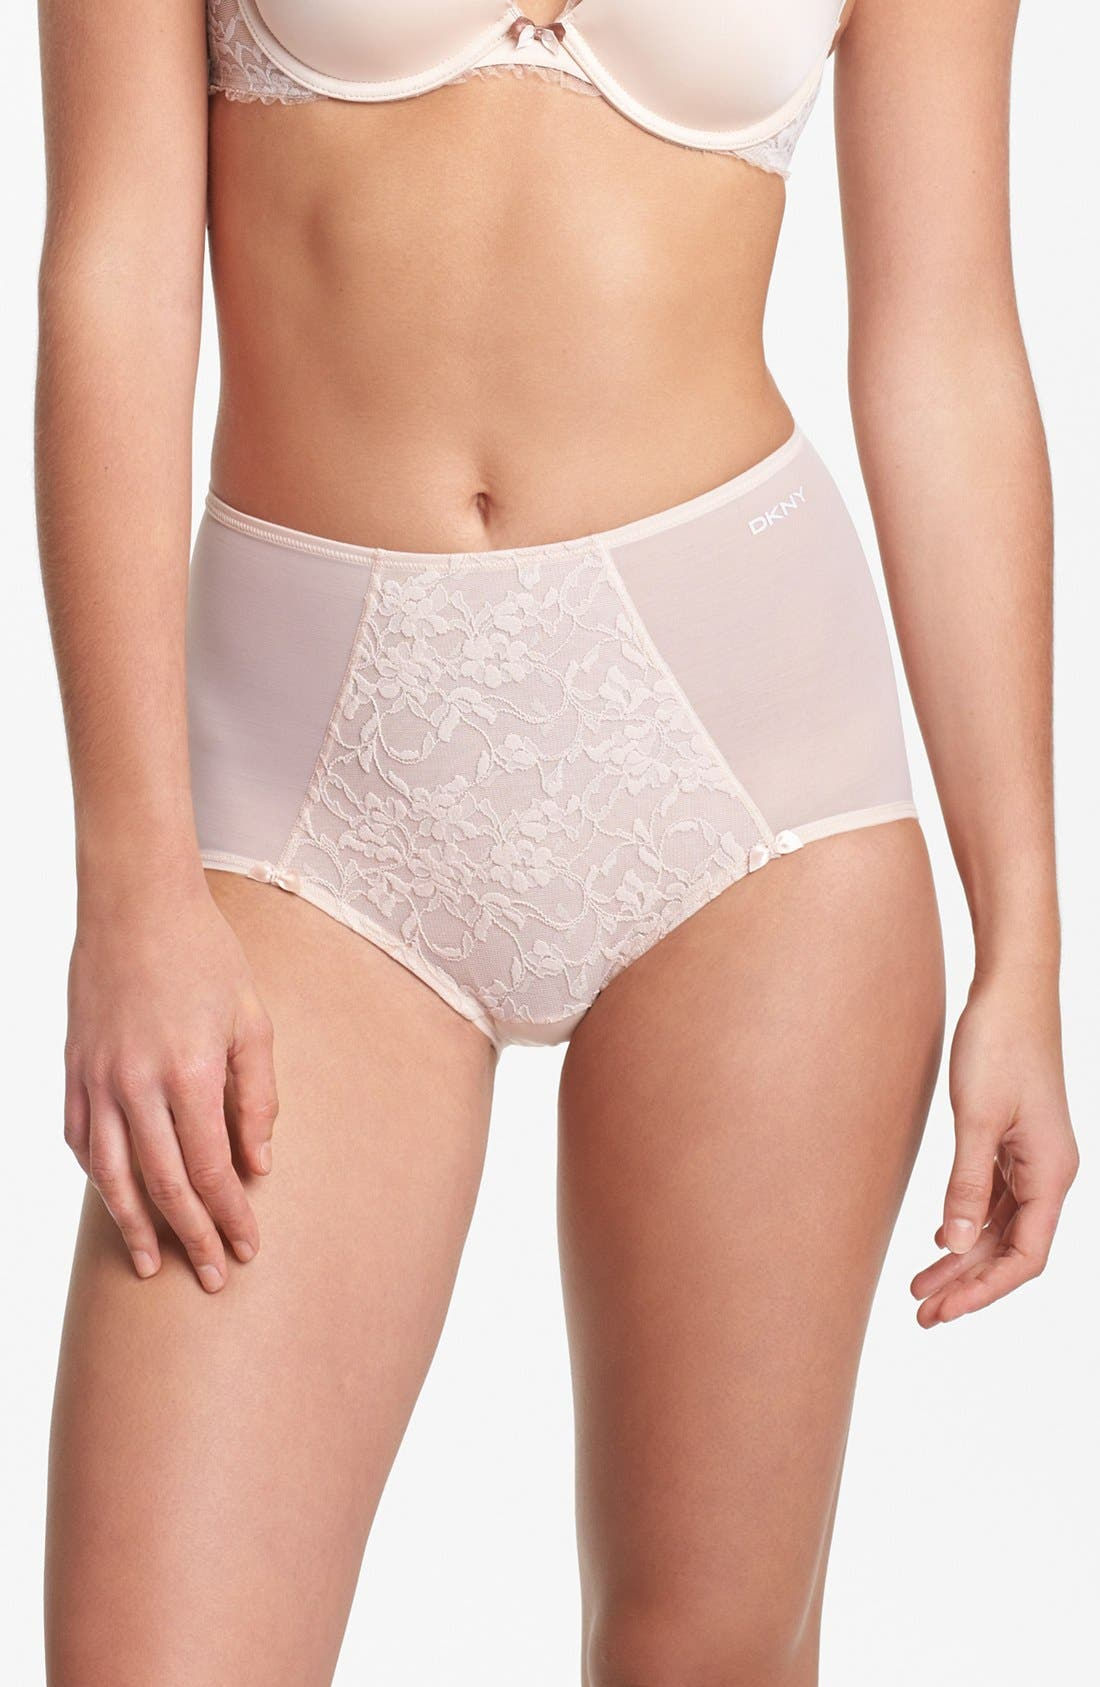 Main Image - DKNY 'Underslimmers Signature Lace' Shaping Briefs (Online Only)